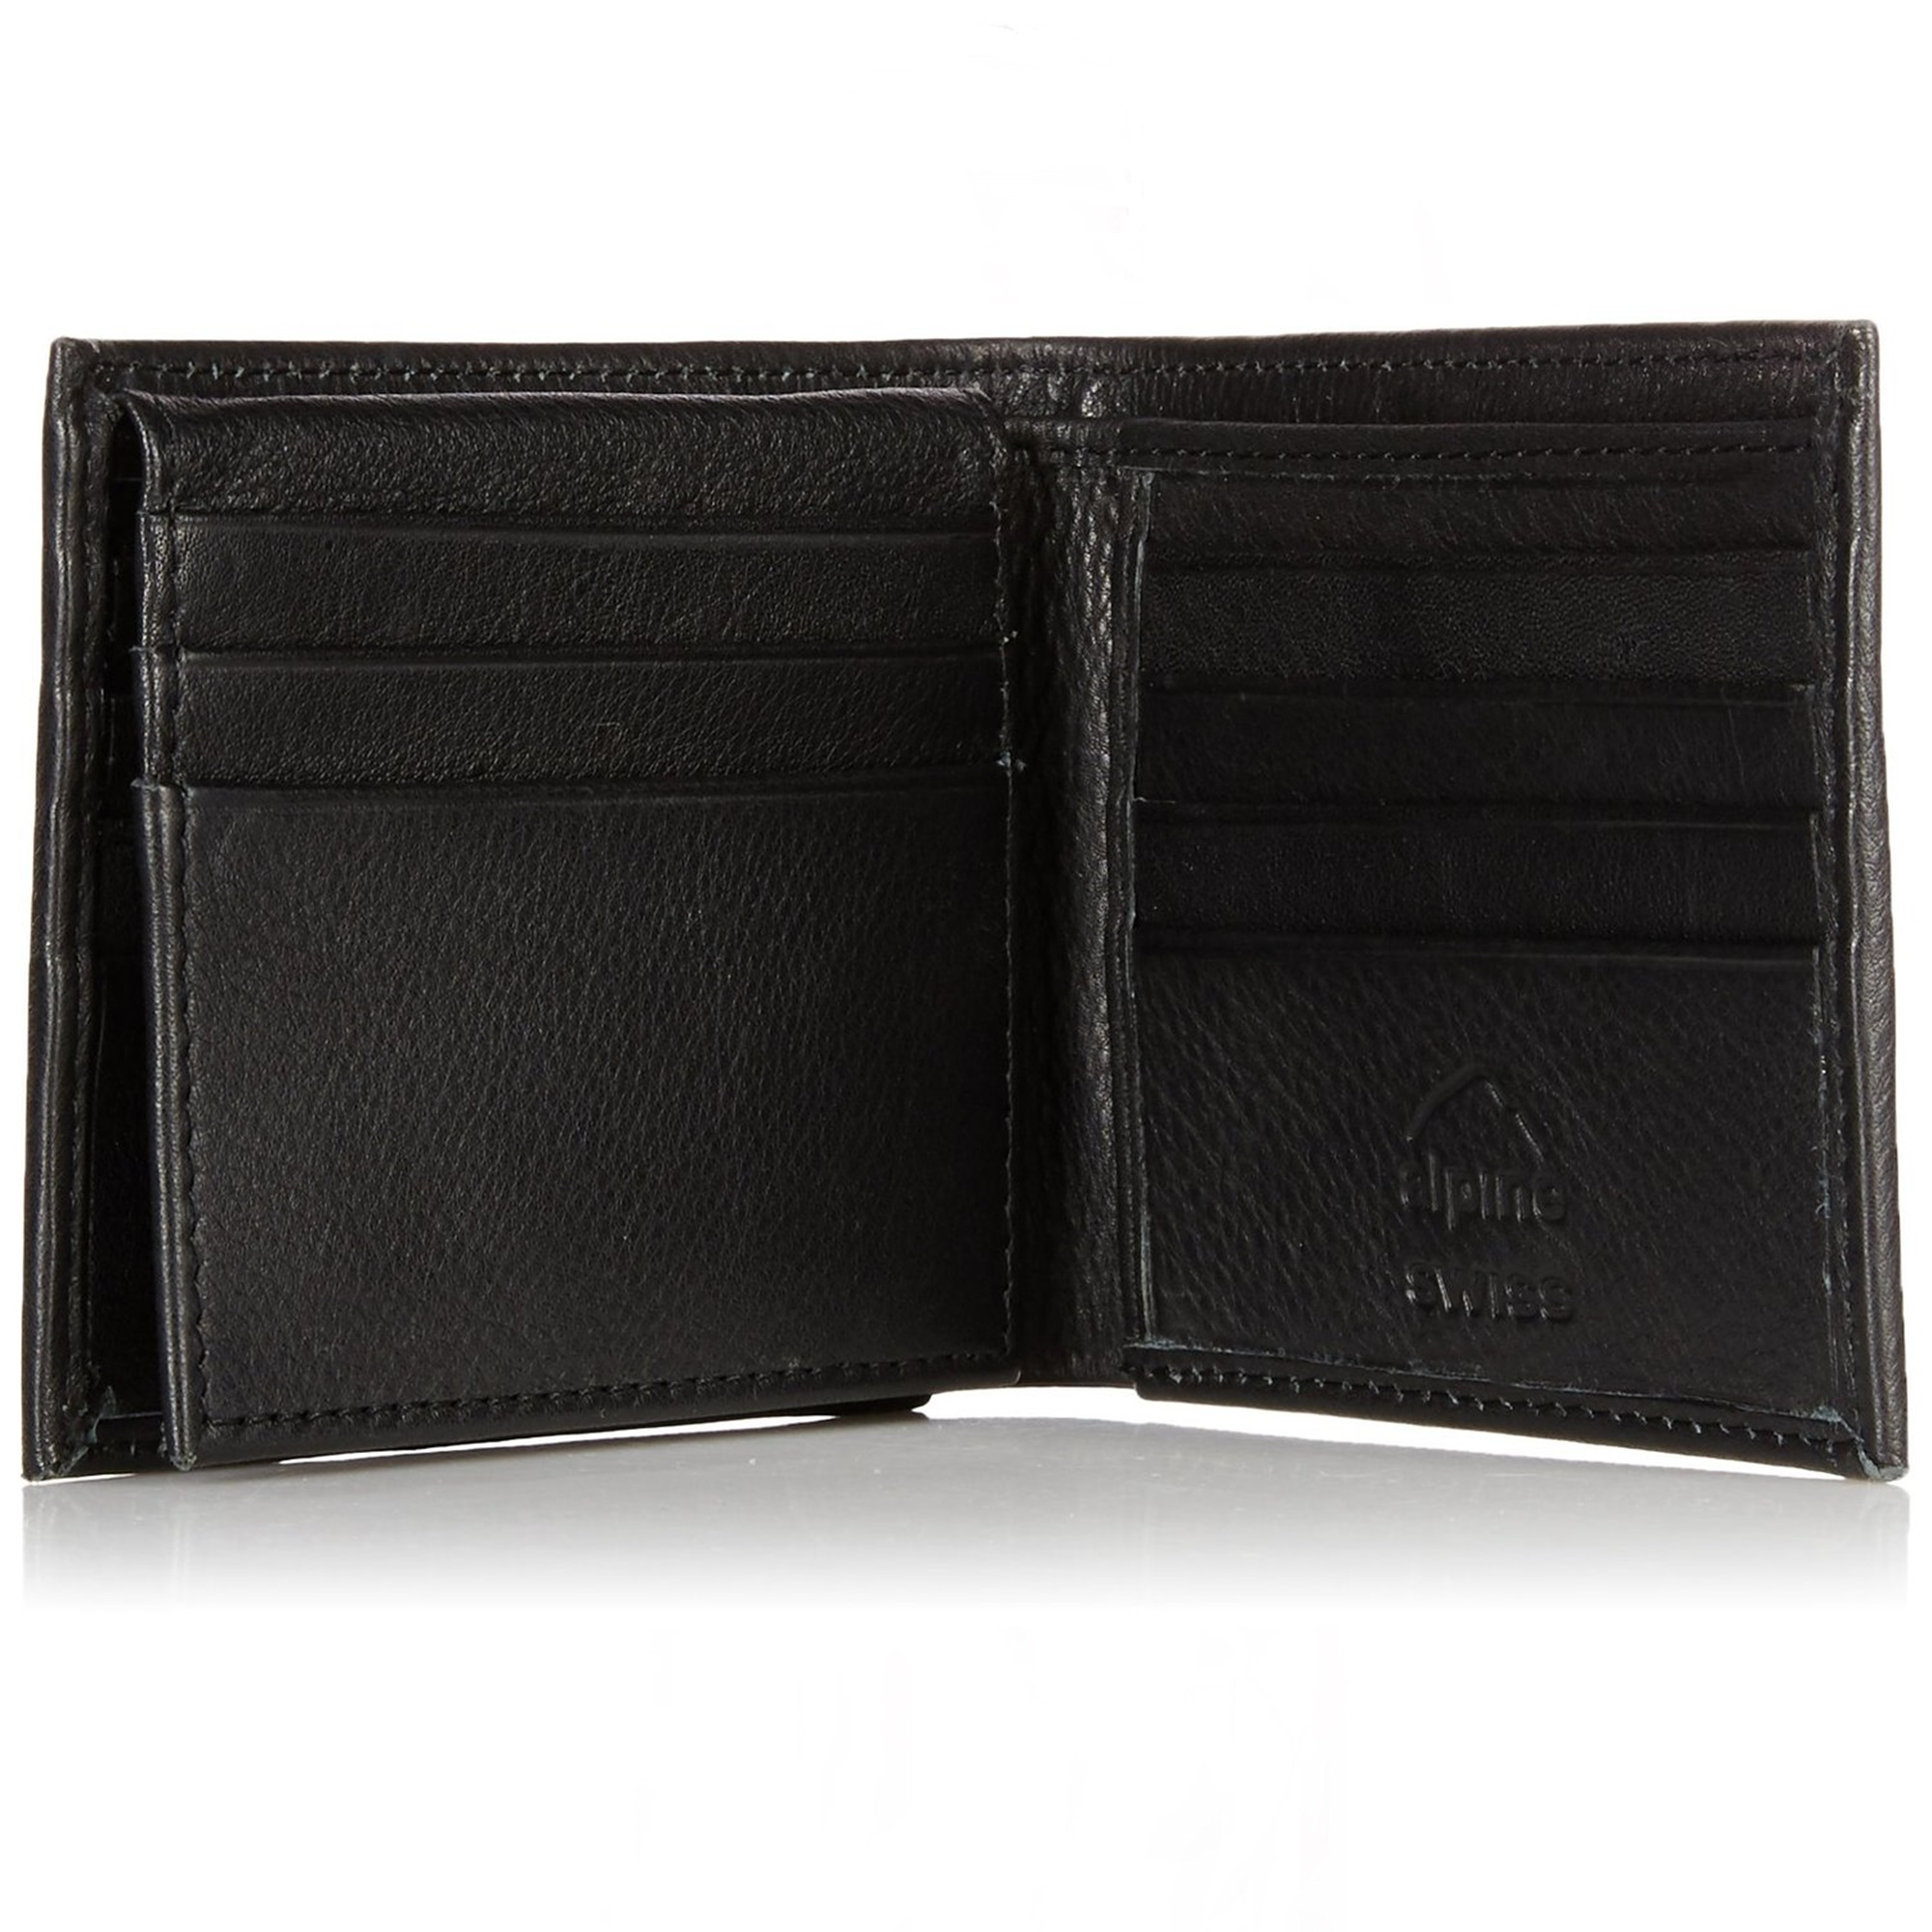 RFID-SAFE-Alpine-Swiss-Mens-Deluxe-Wallet-Genuine-Leather-14-Pocket-ID-Bifold thumbnail 20